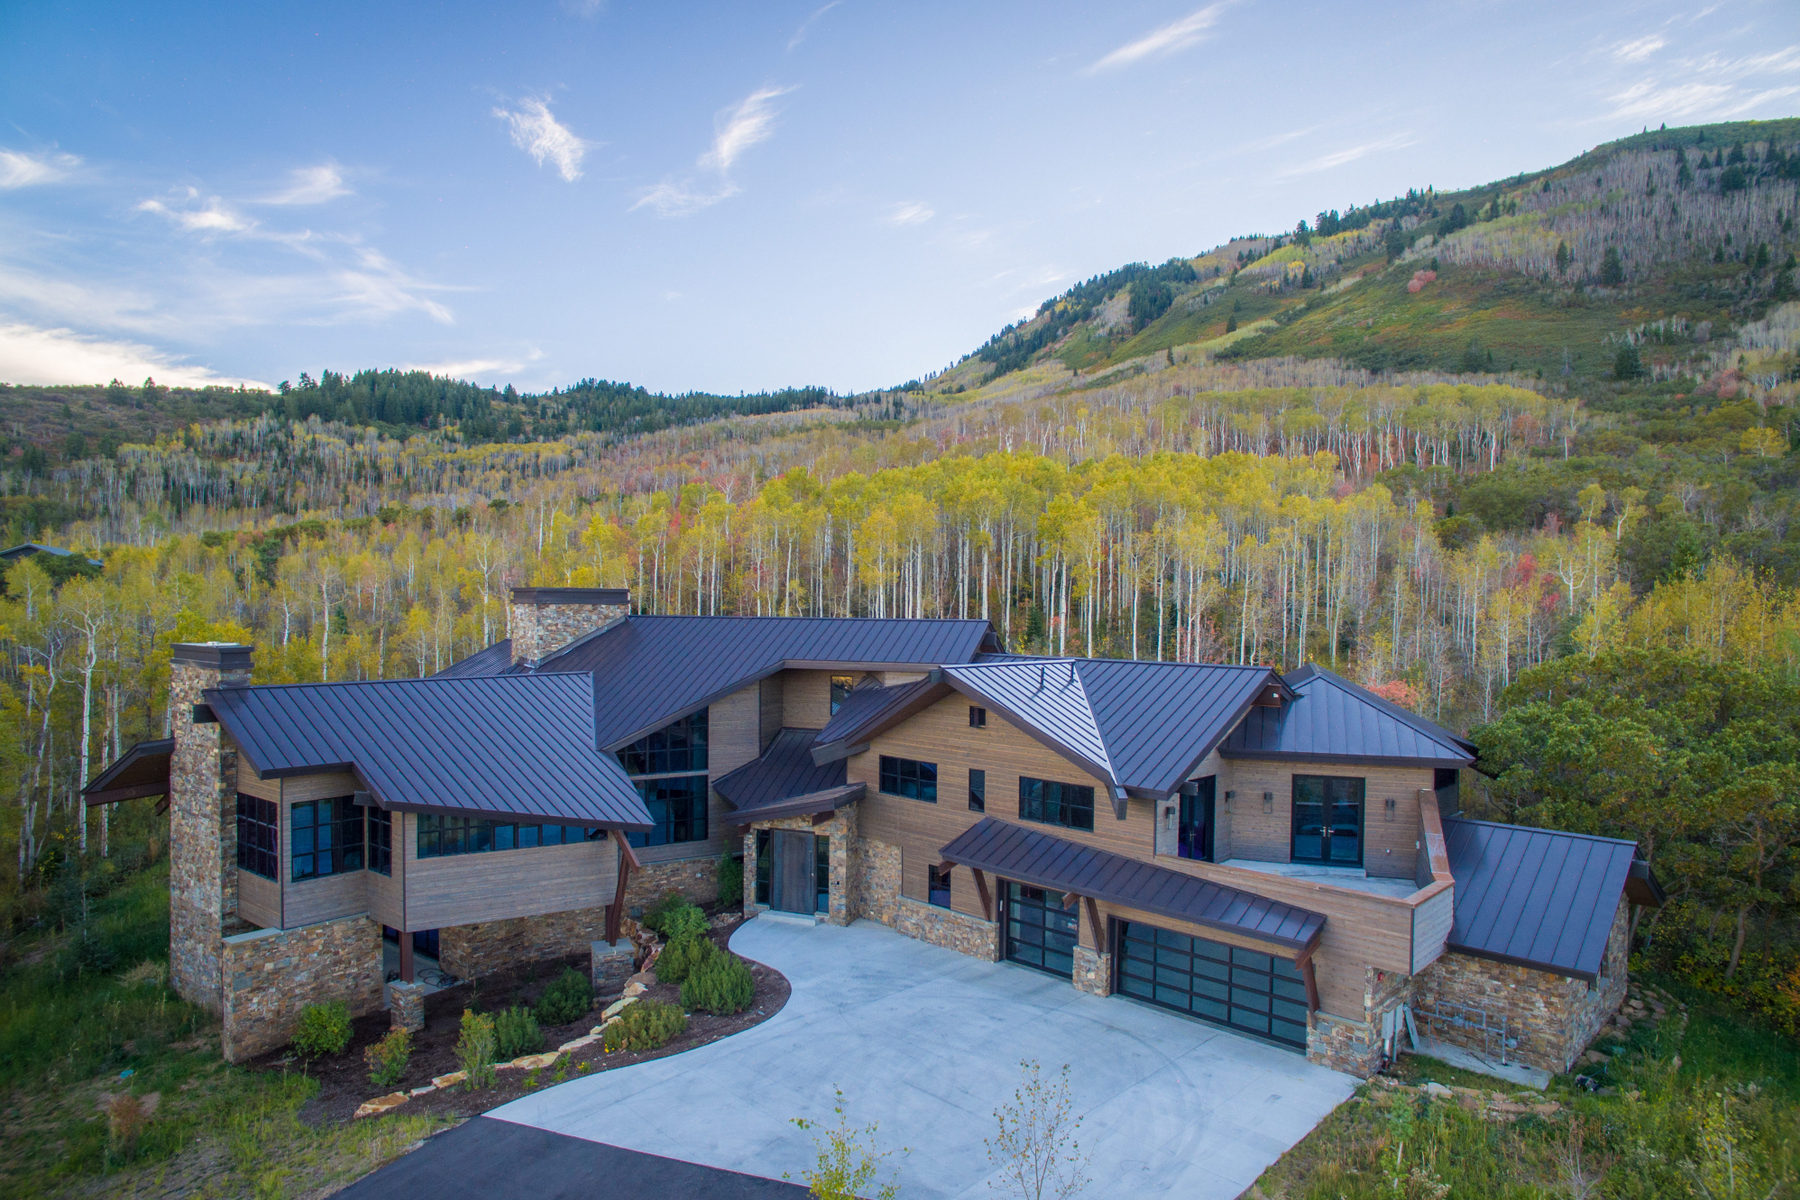 단독 가정 주택 용 매매 에 Newly Finished Mountain Contemporary Masterpiece 21 Canyon Ct Park City, 유타 84060 미국